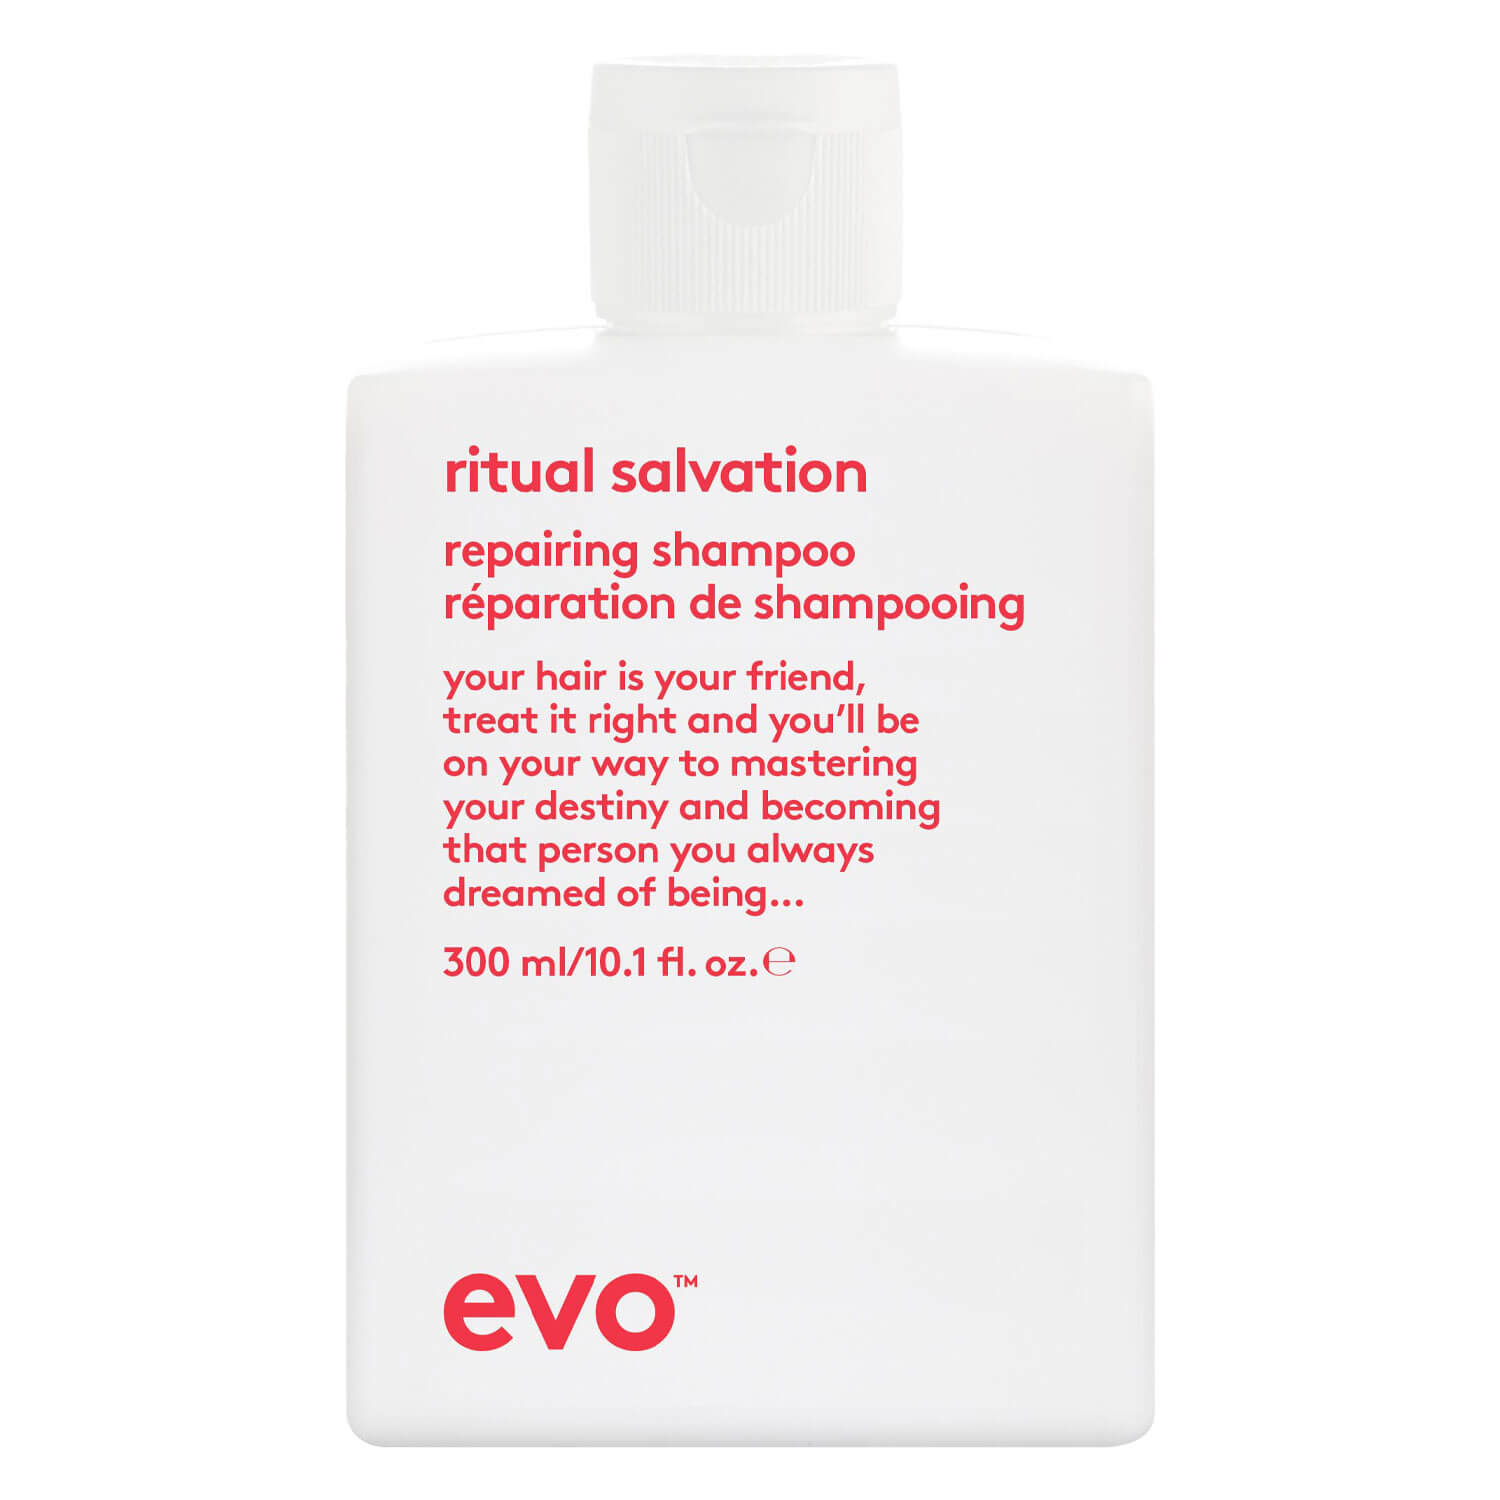 evo care - ritual salvation care shampoo